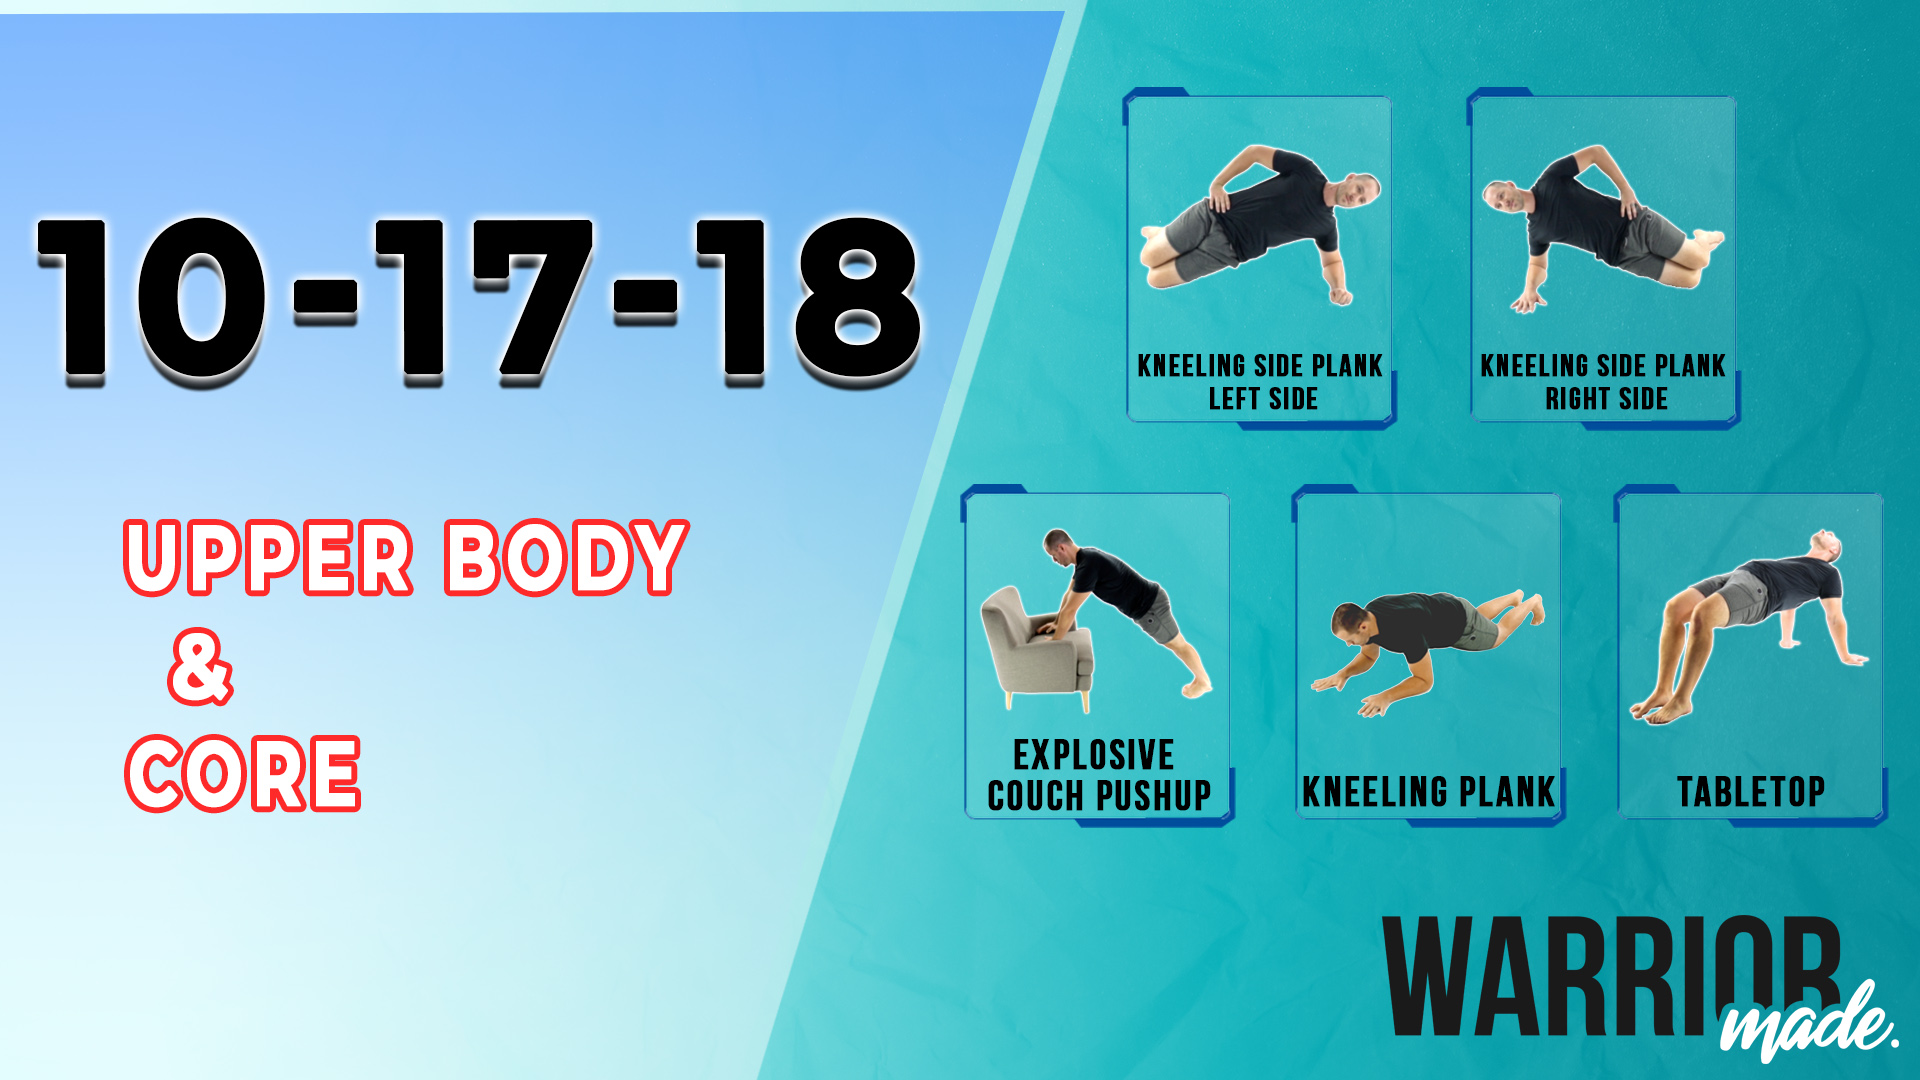 workouts-10-17-18